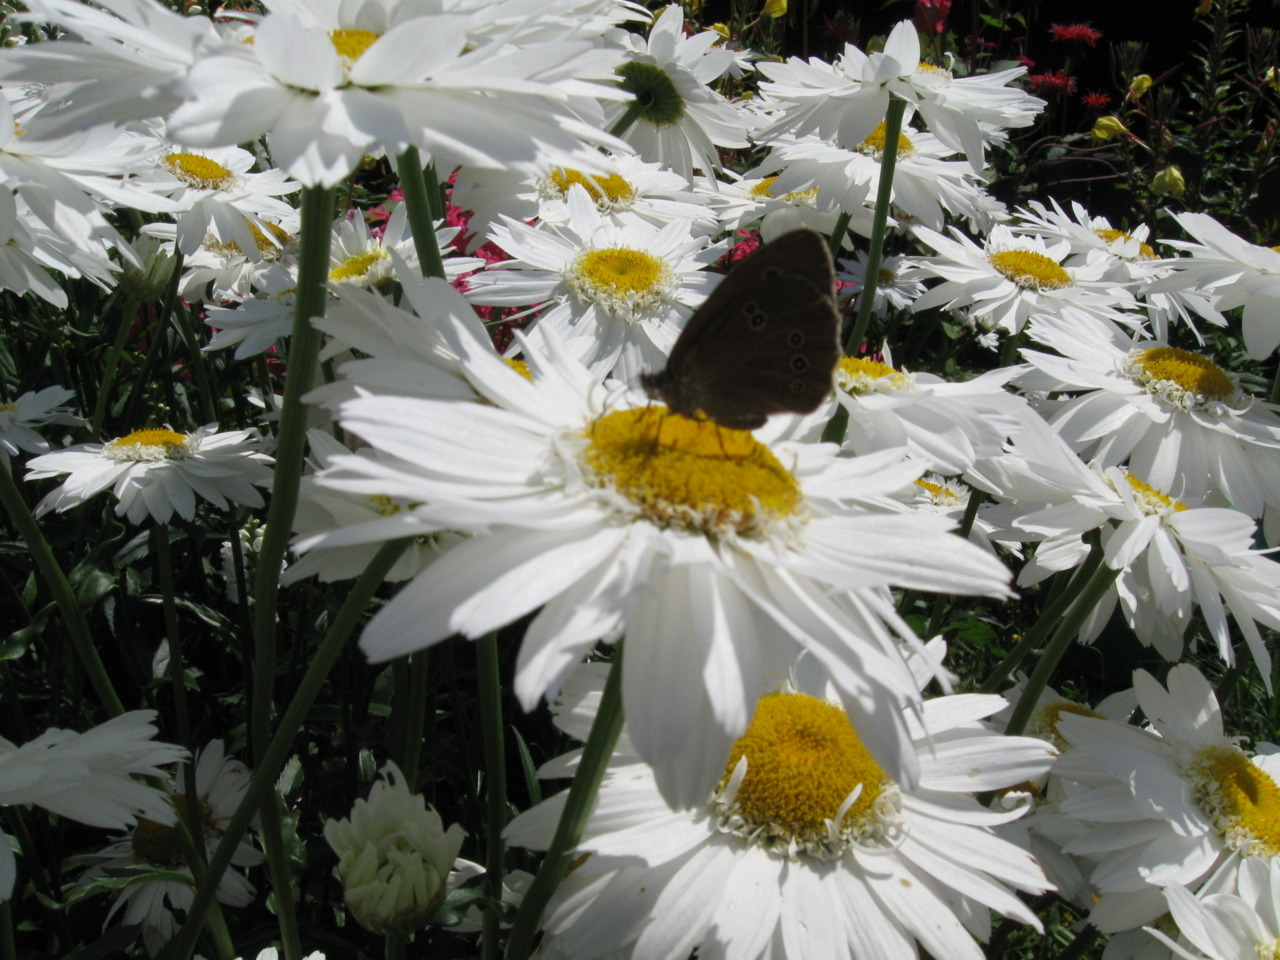 Butterfly on a daisy. Photo done by me, summer of 2010 in my hometown.